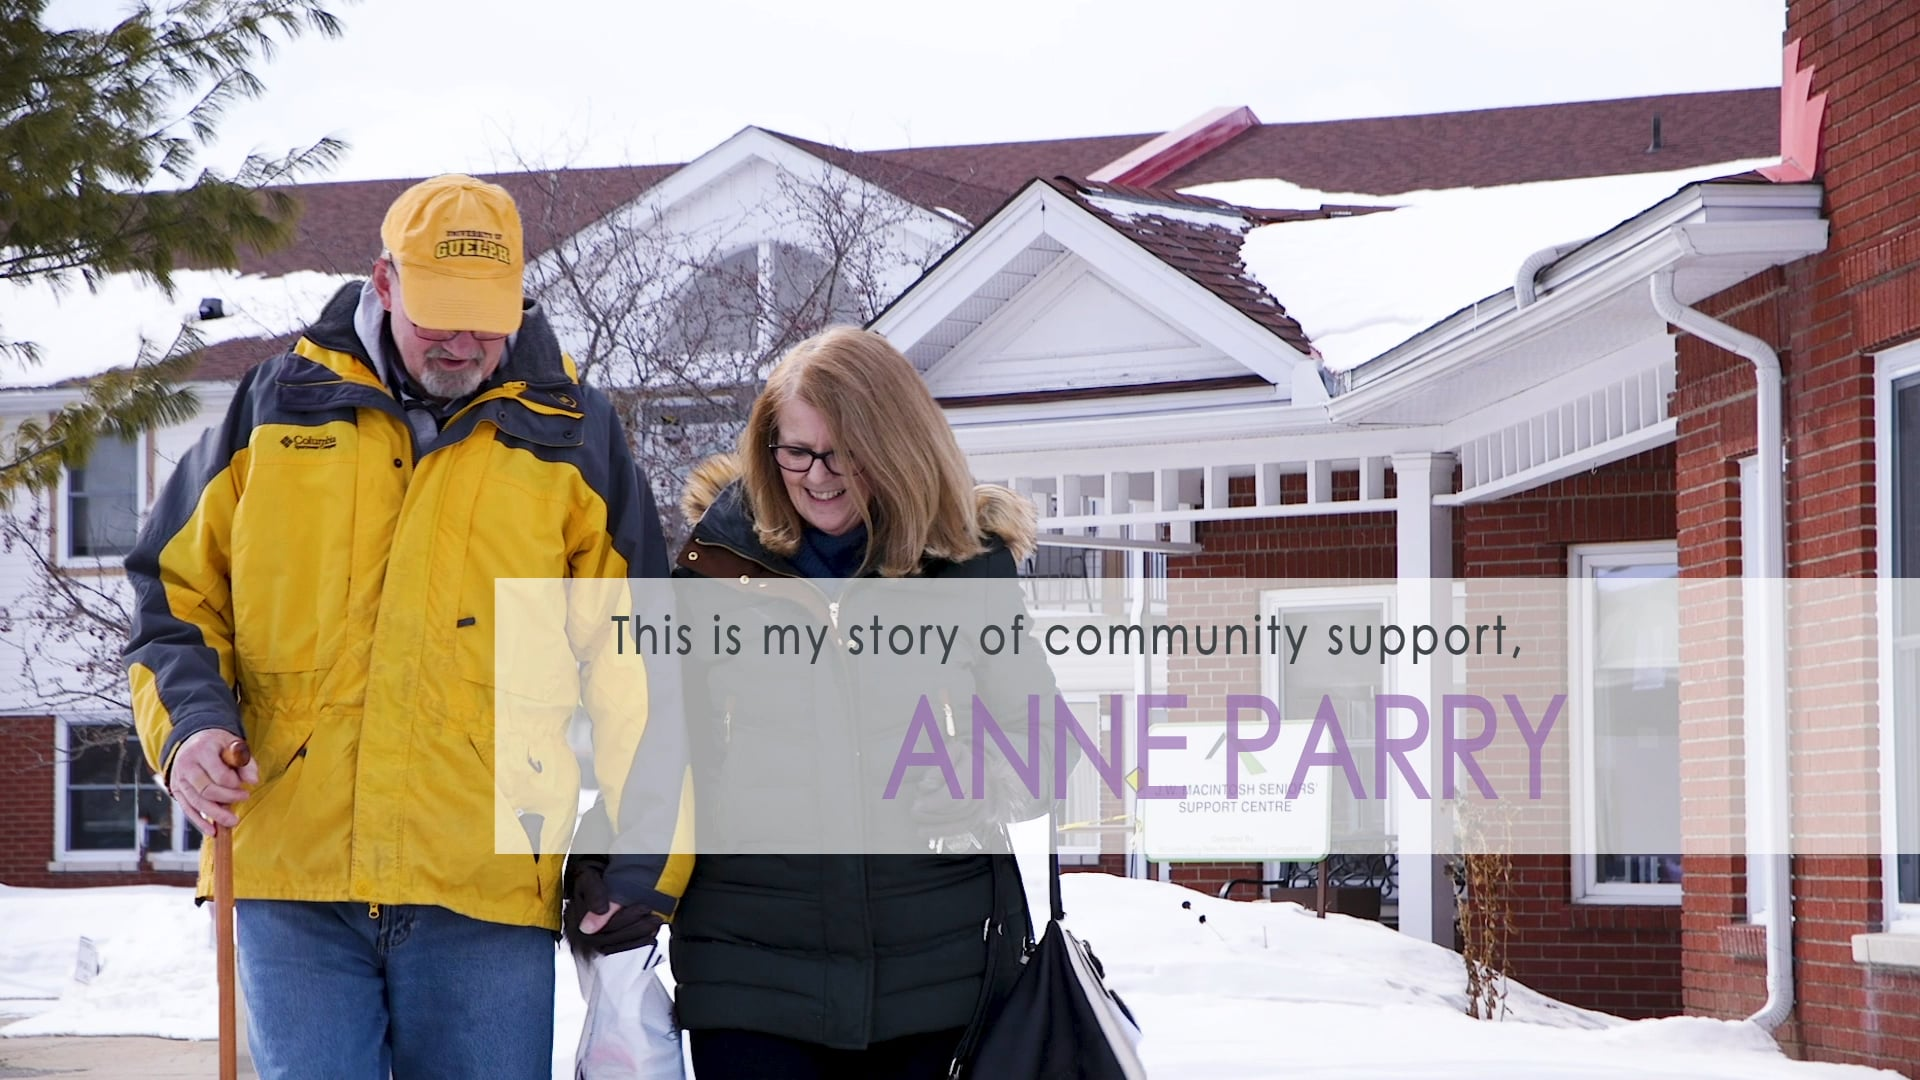 Anne's Story of Community Support